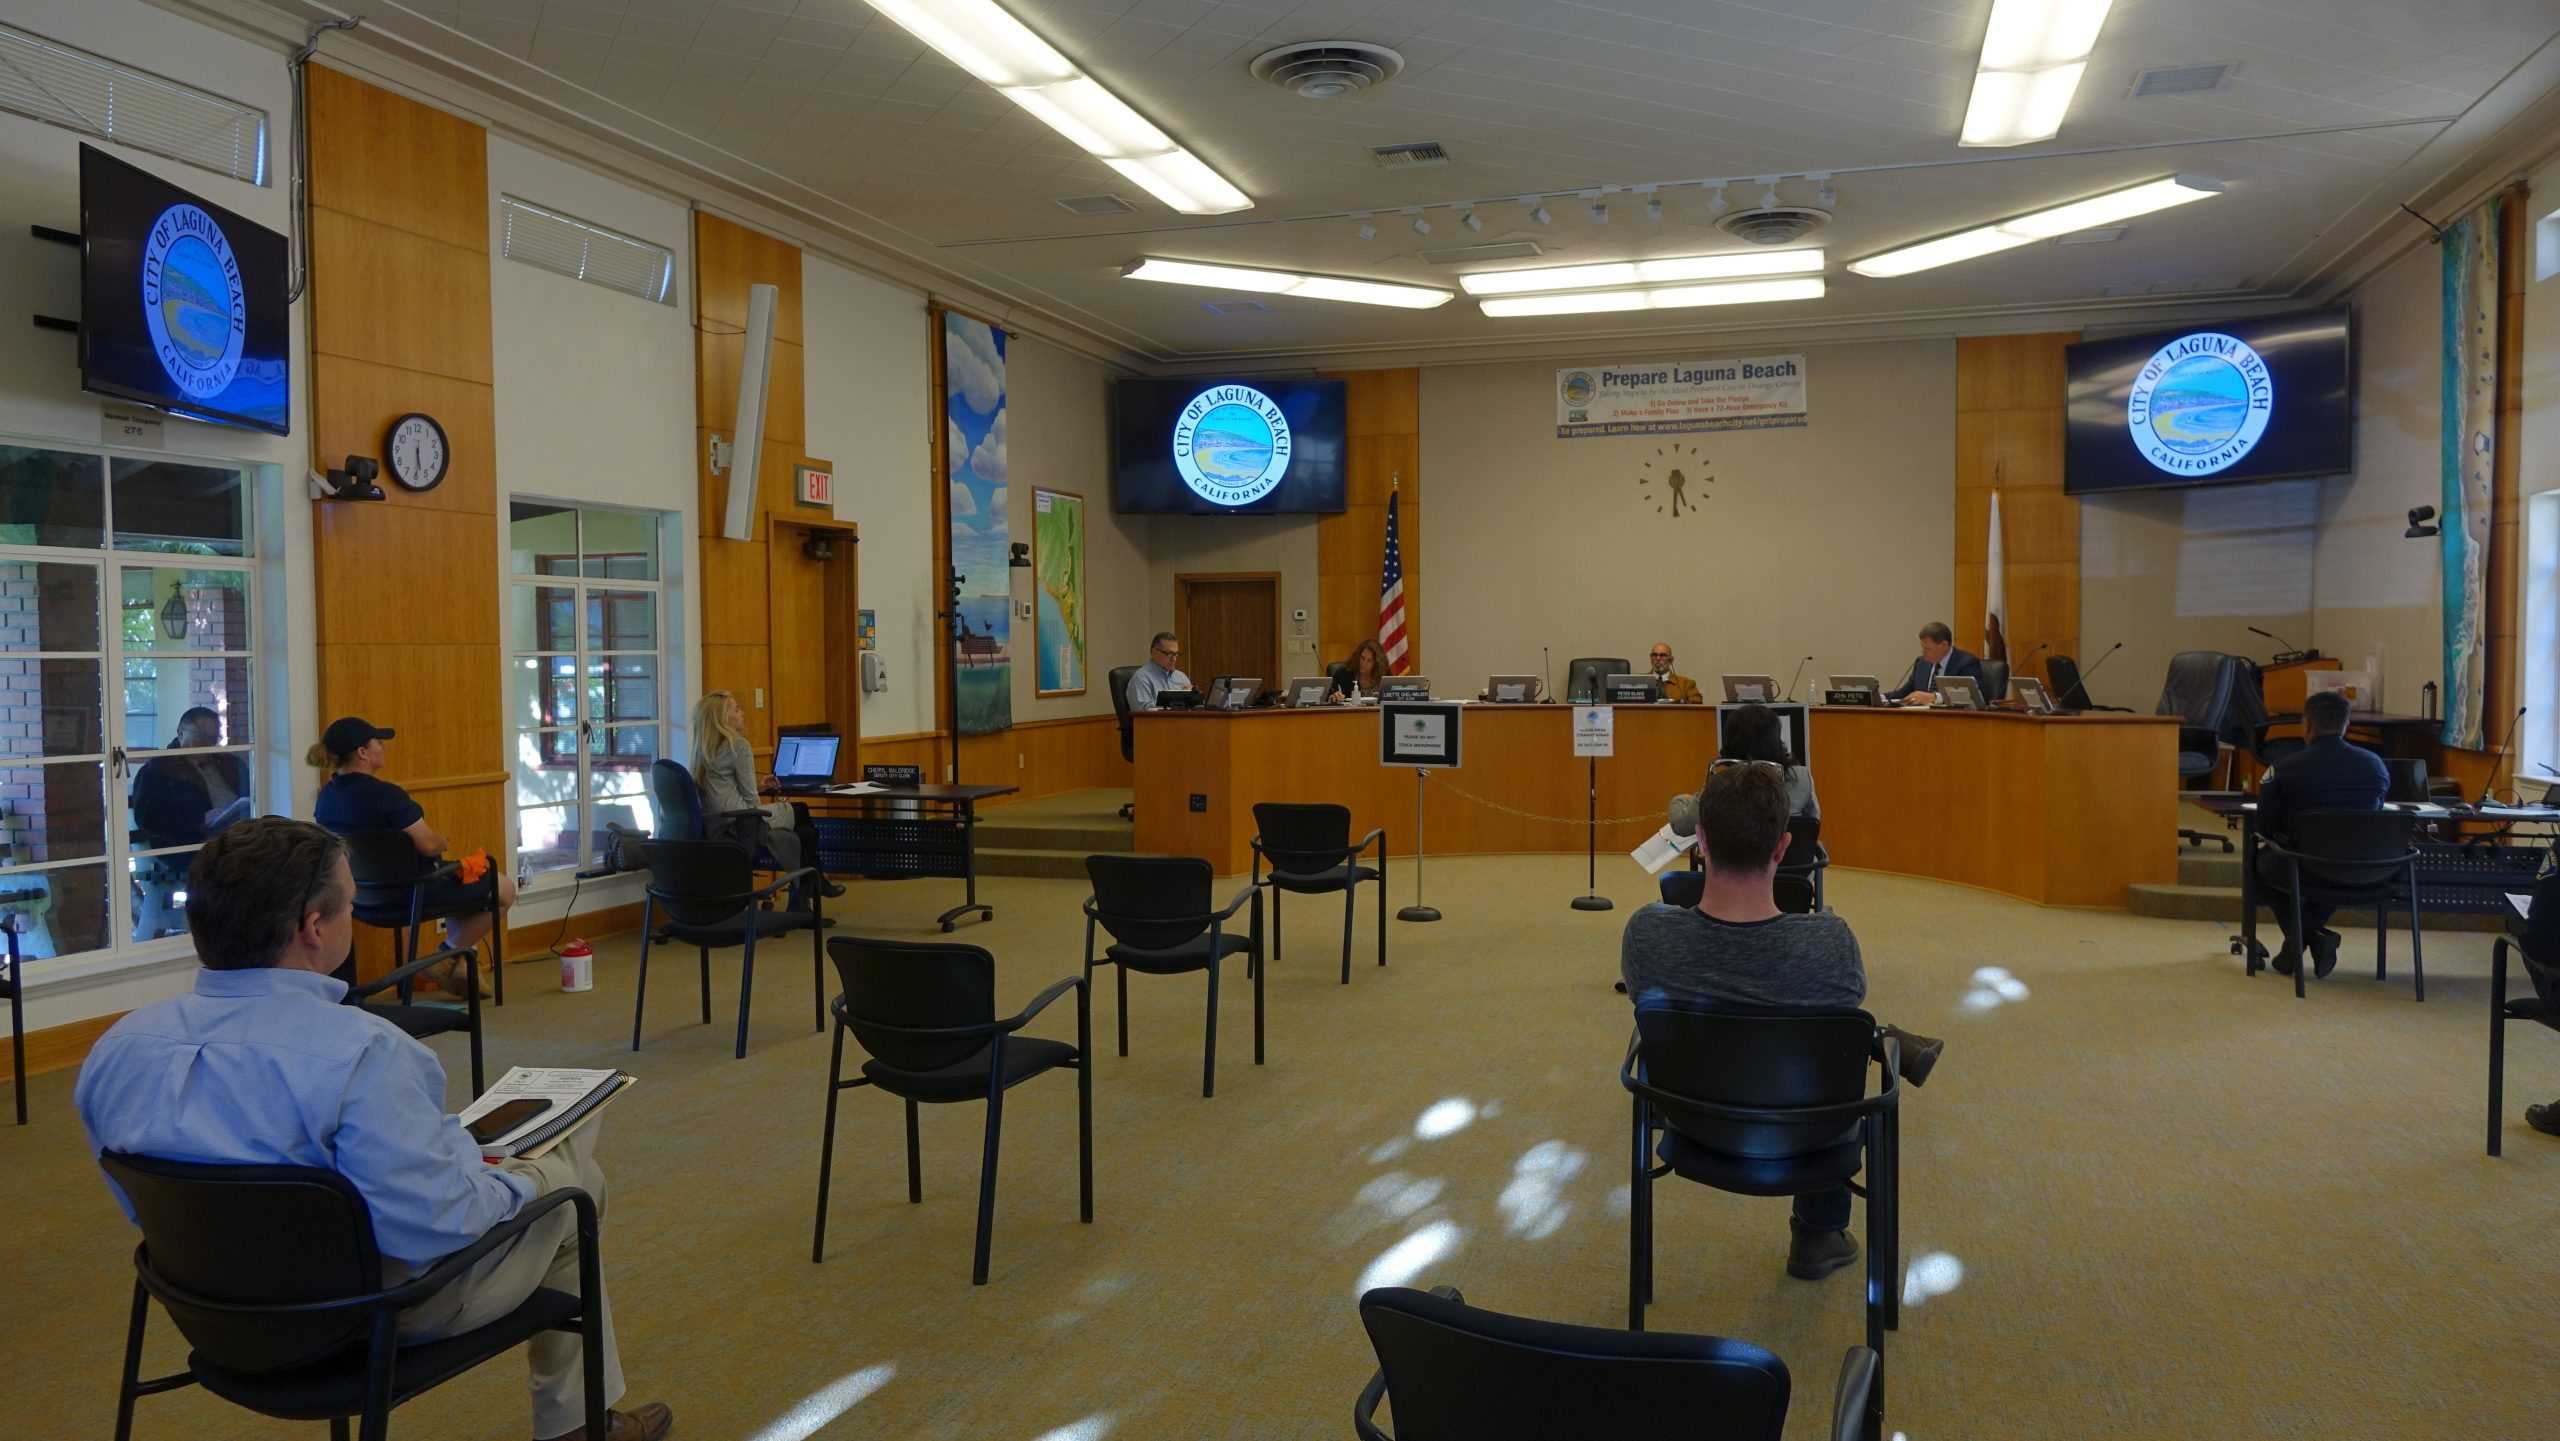 City Council Will Teleconference To Govern During Health Crisis - Laguna Beach Local News